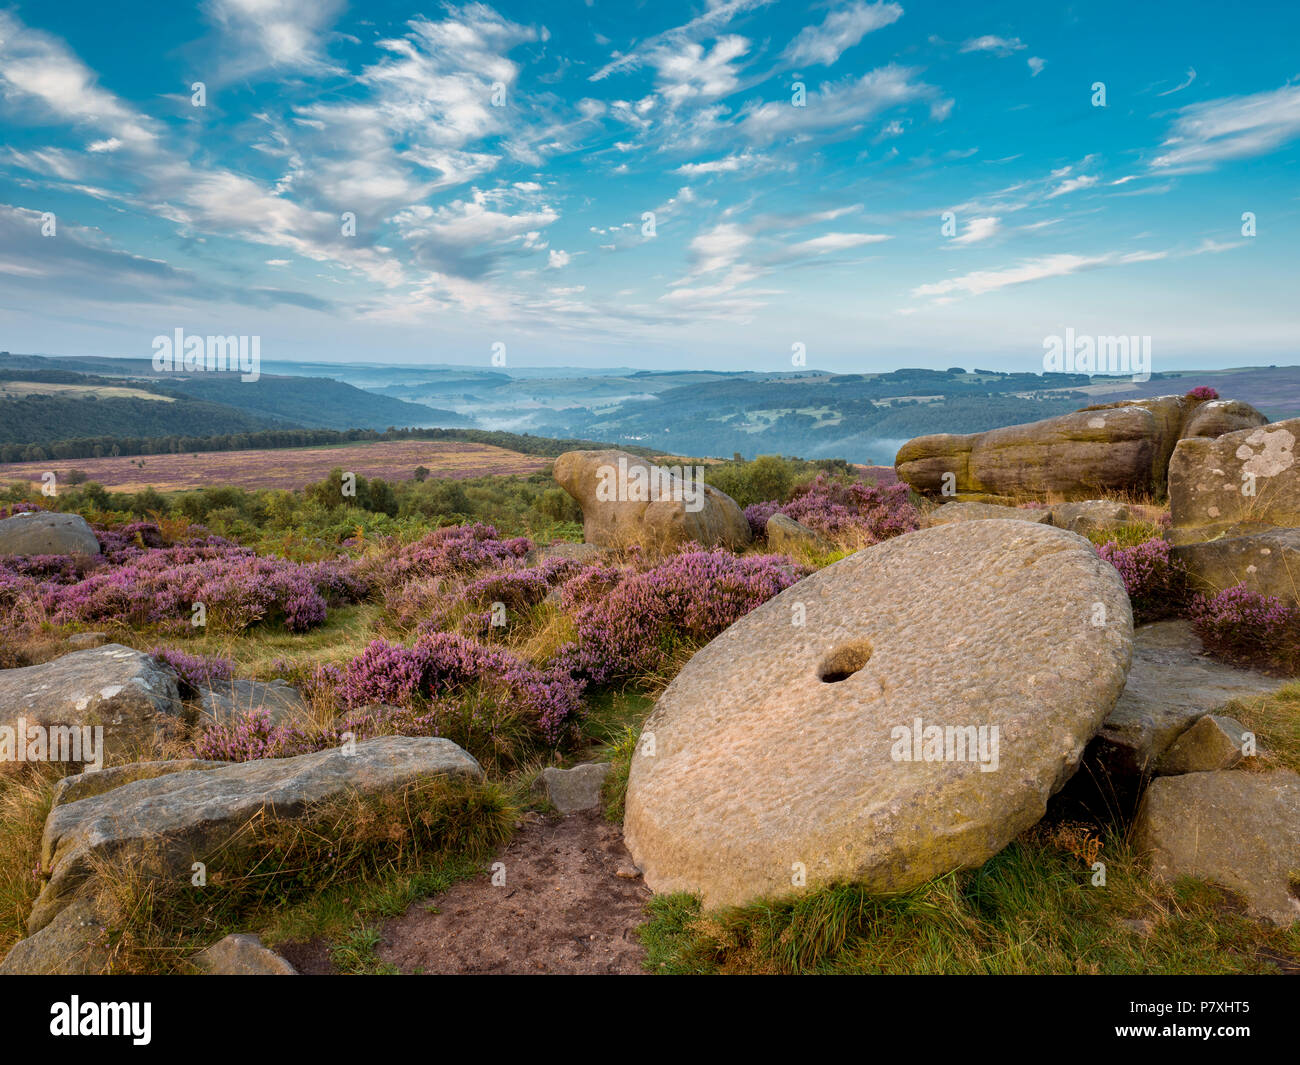 A large millstone on the moors above Hathersage. - Stock Image